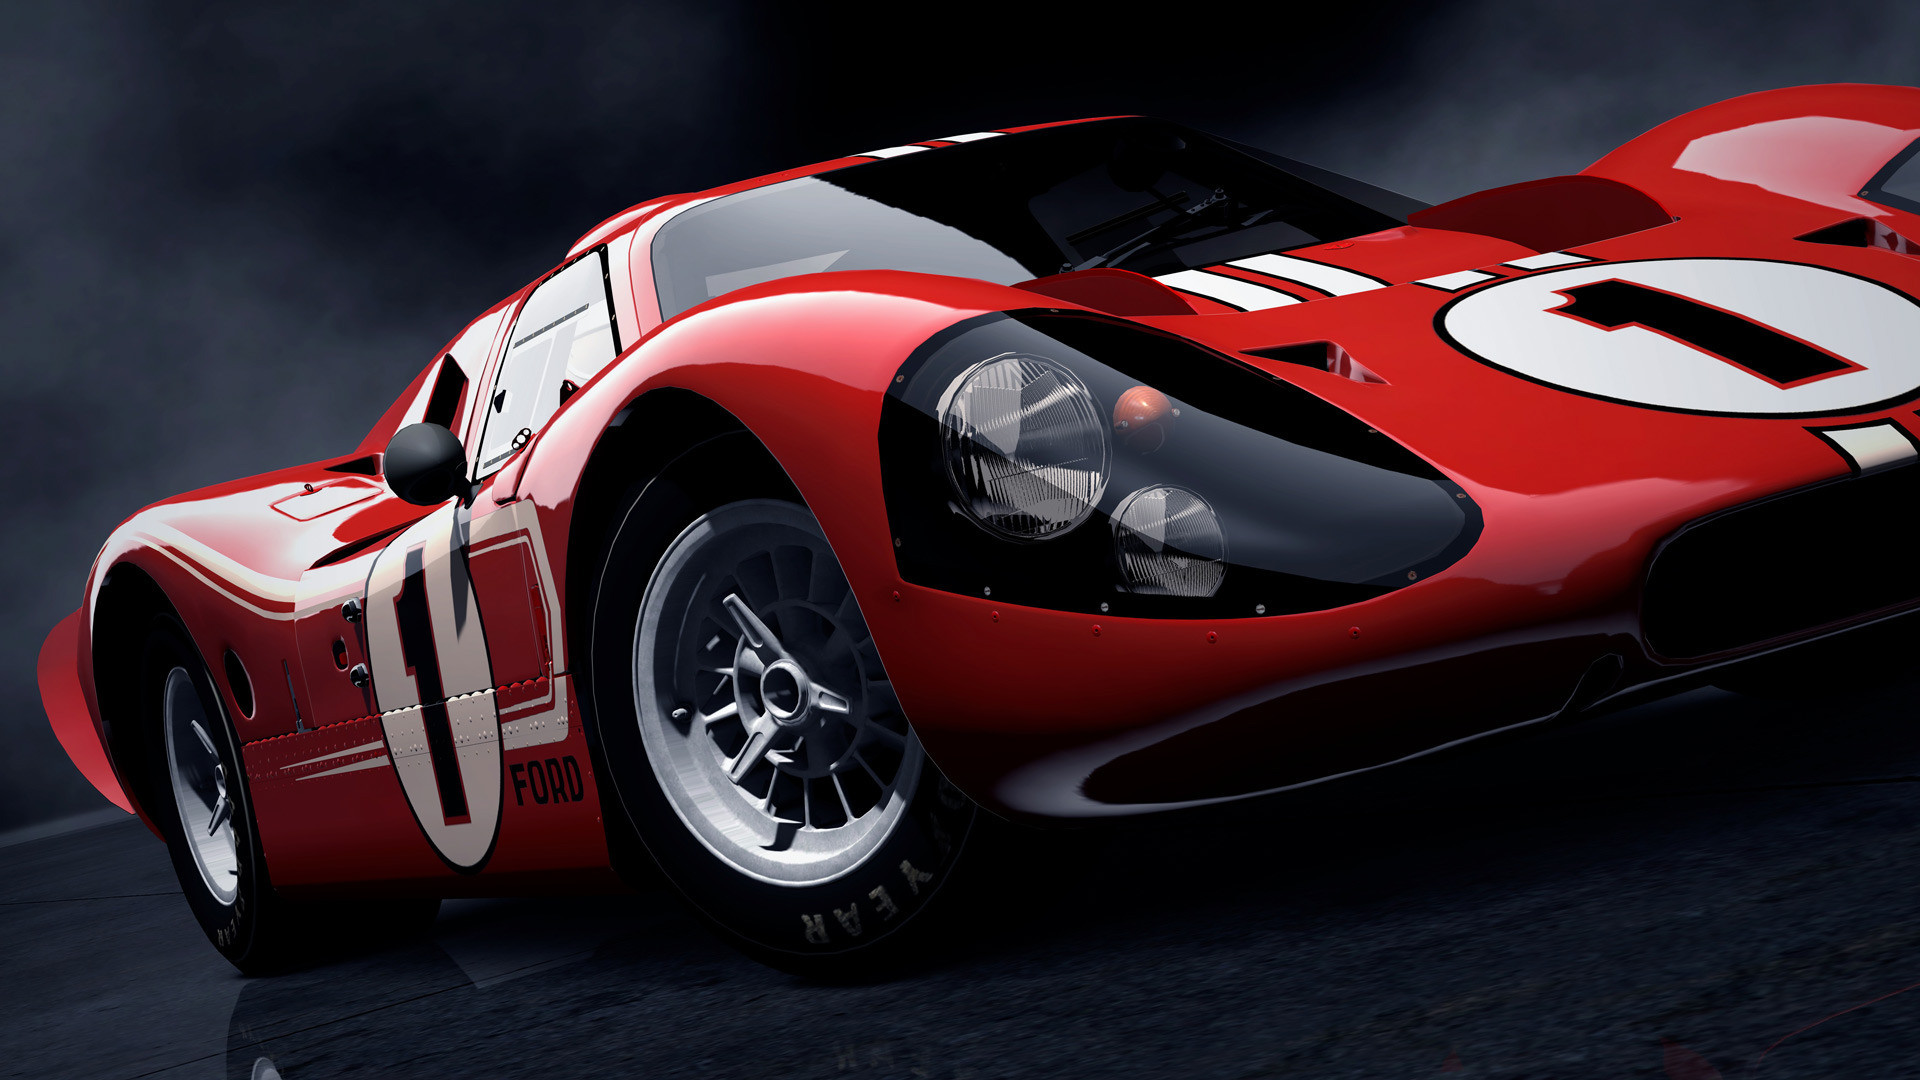 Res: 1920x1080, Ford Gt40 High Resolution Wallpaper Picture